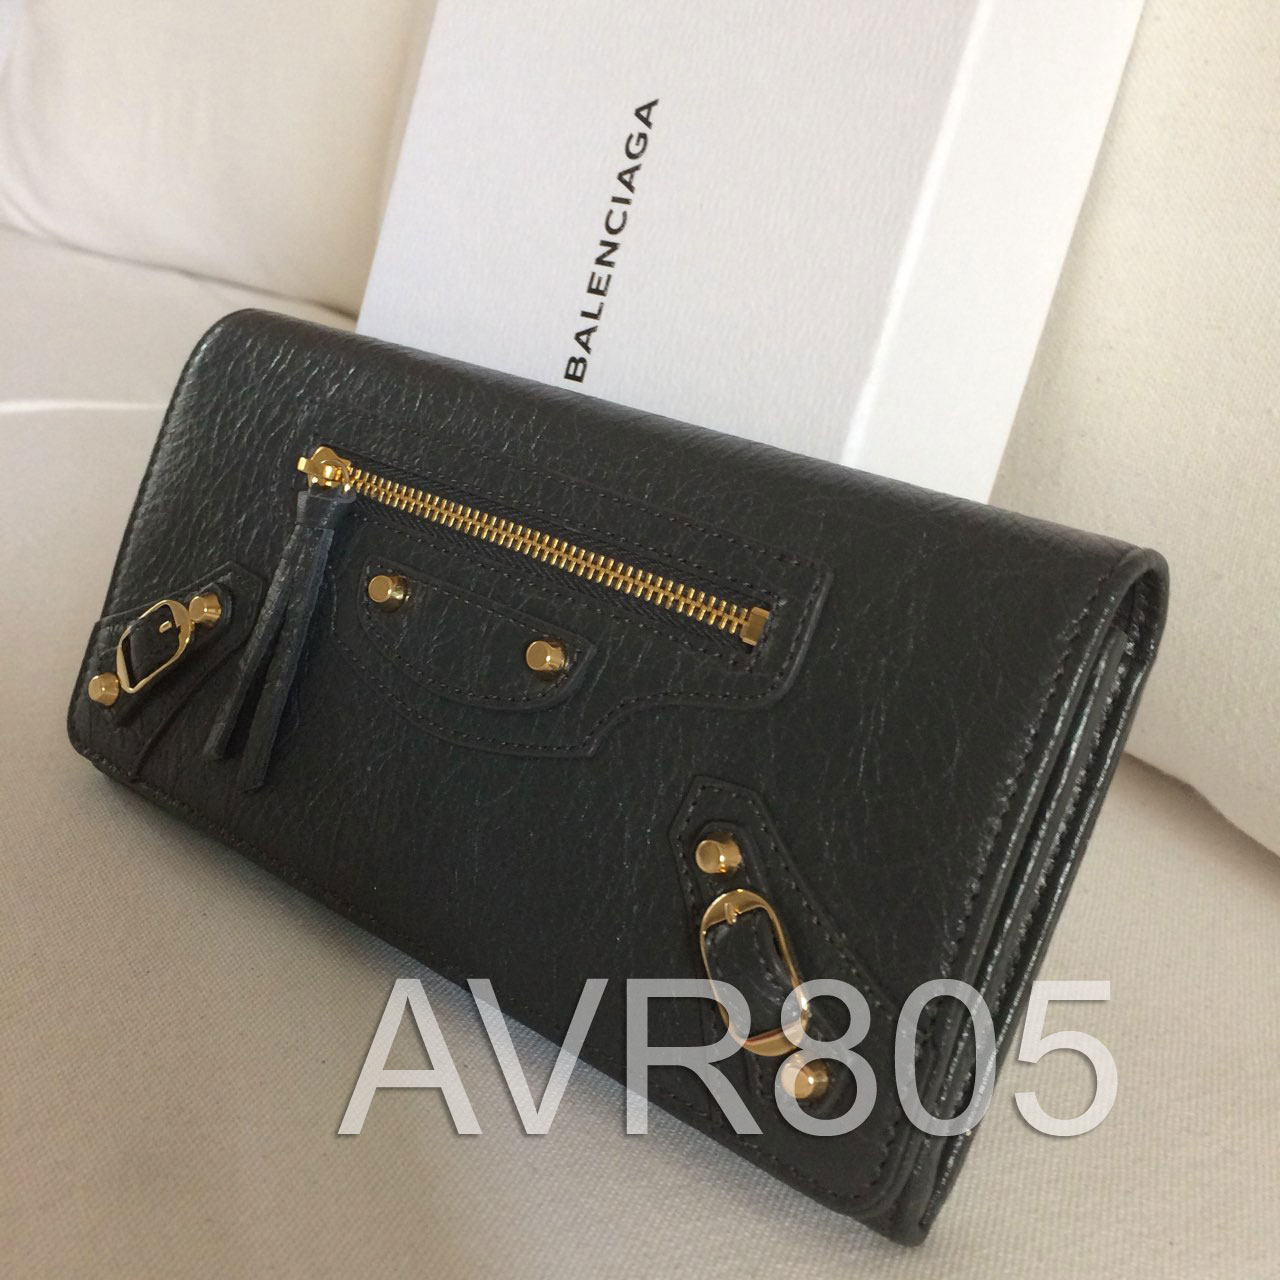 04425fe7285 Balenciaga Money Wallet Gris Fossil Classic Gold Regular Hardware 2017  Brand New